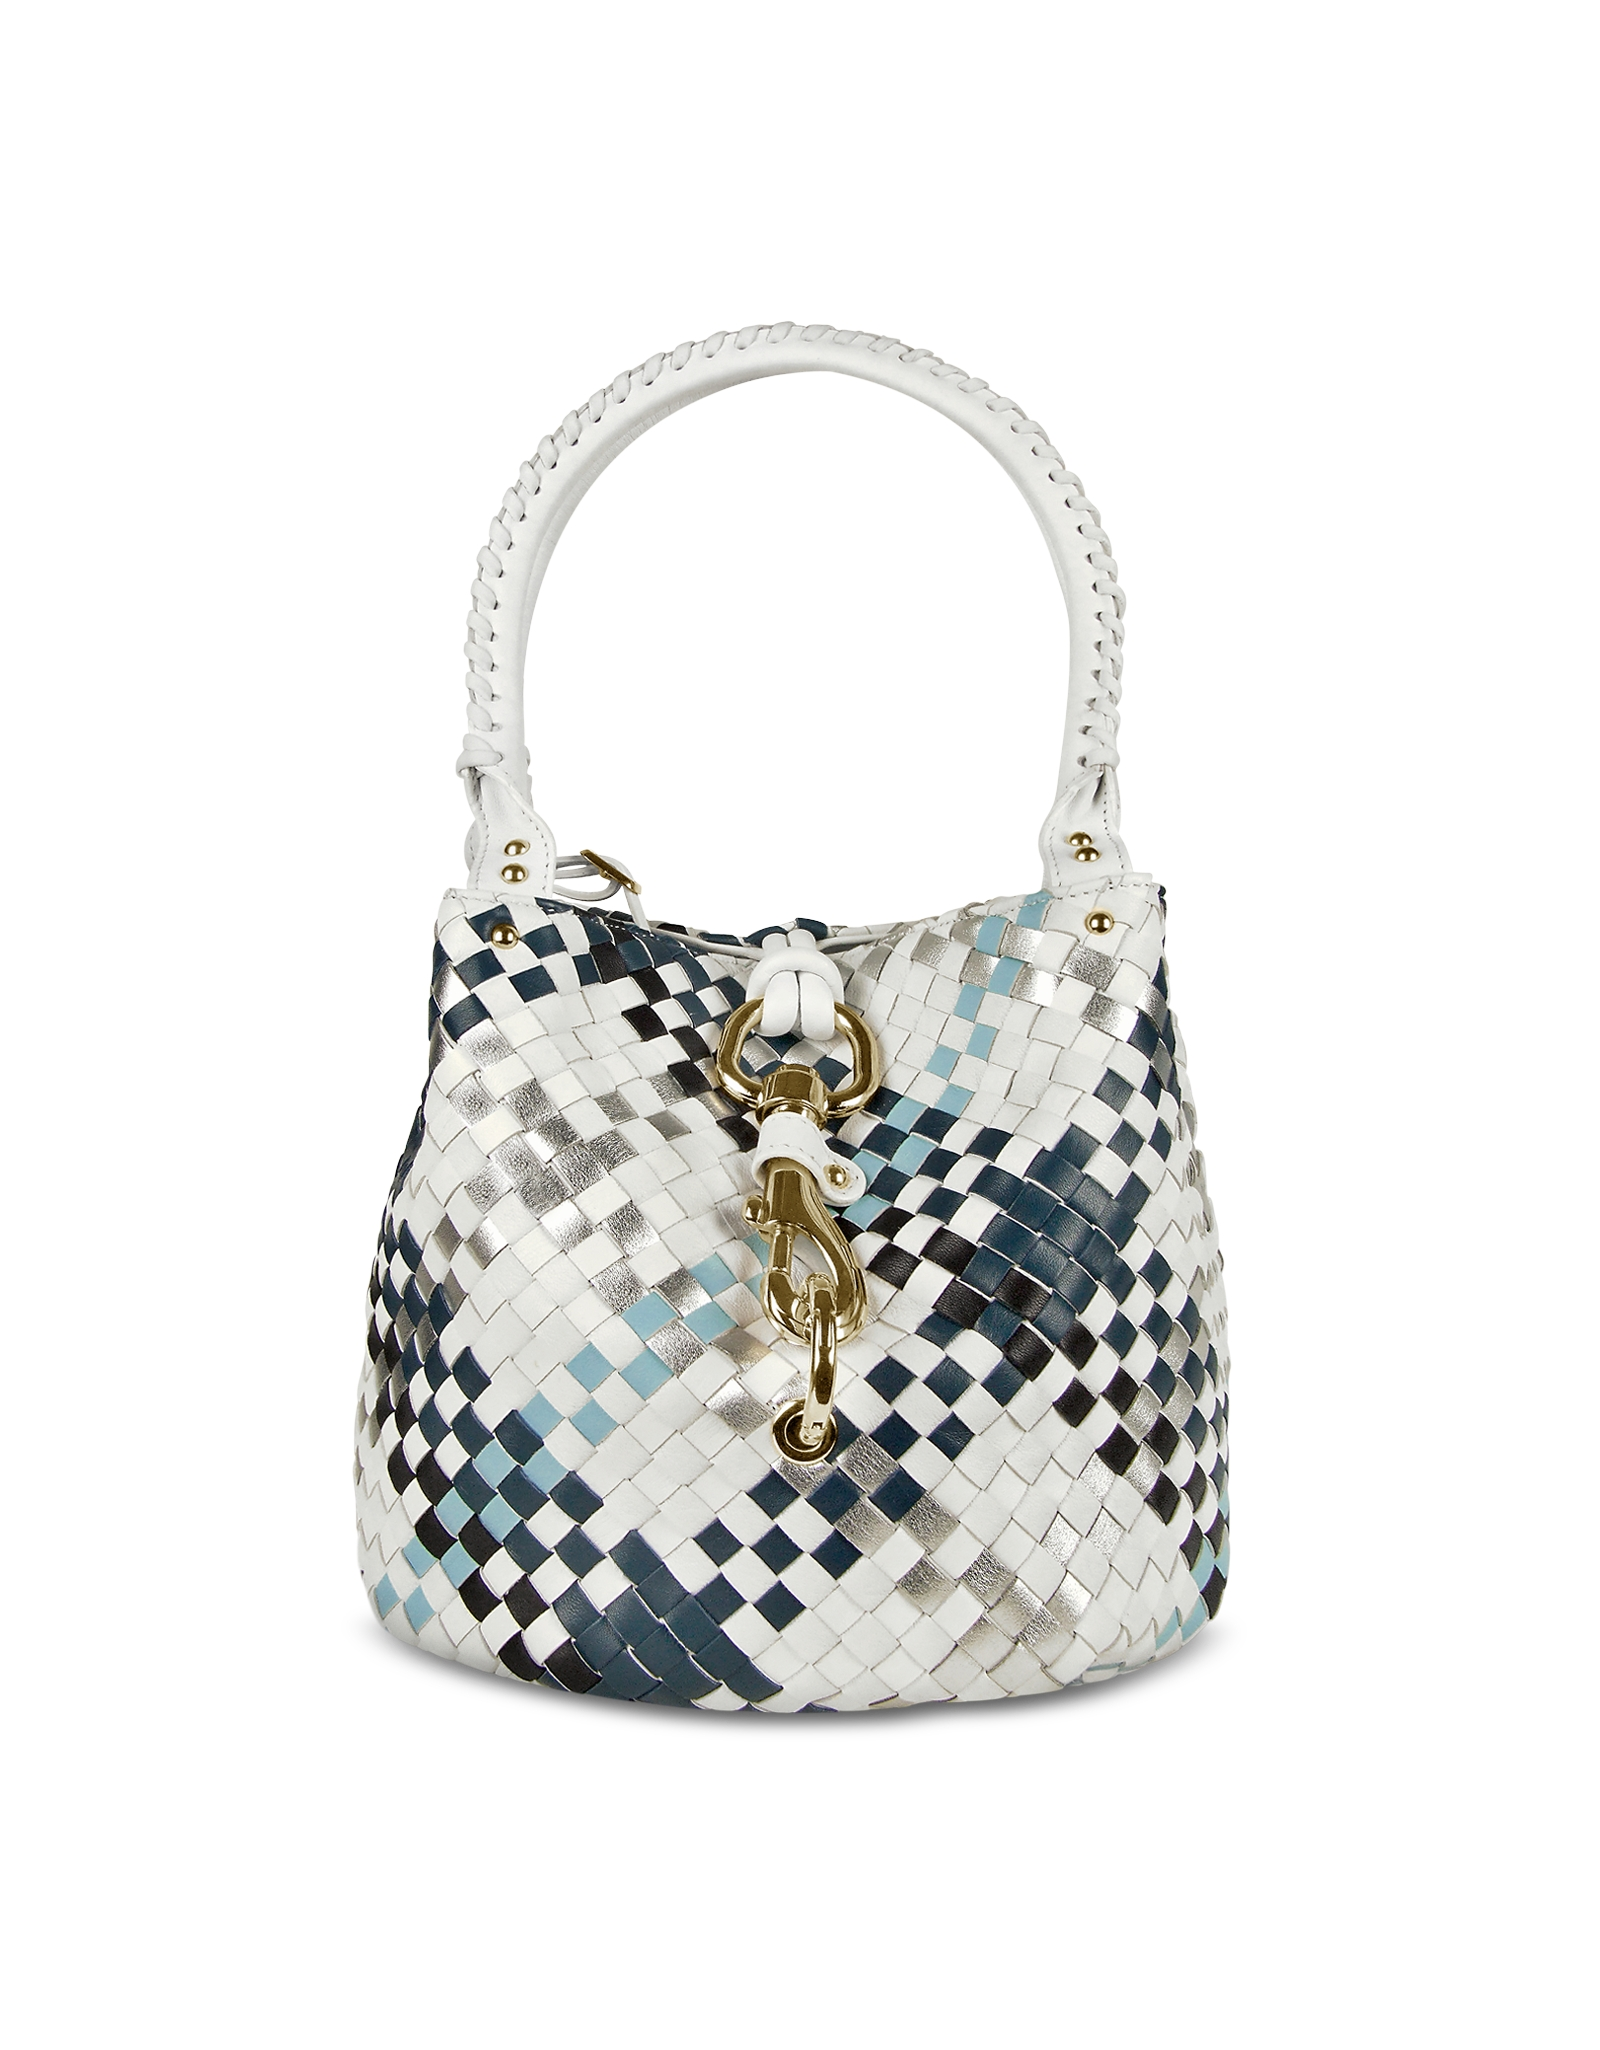 Fontanelli Blue Amp White Woven Leather Mini Bag In White Lyst